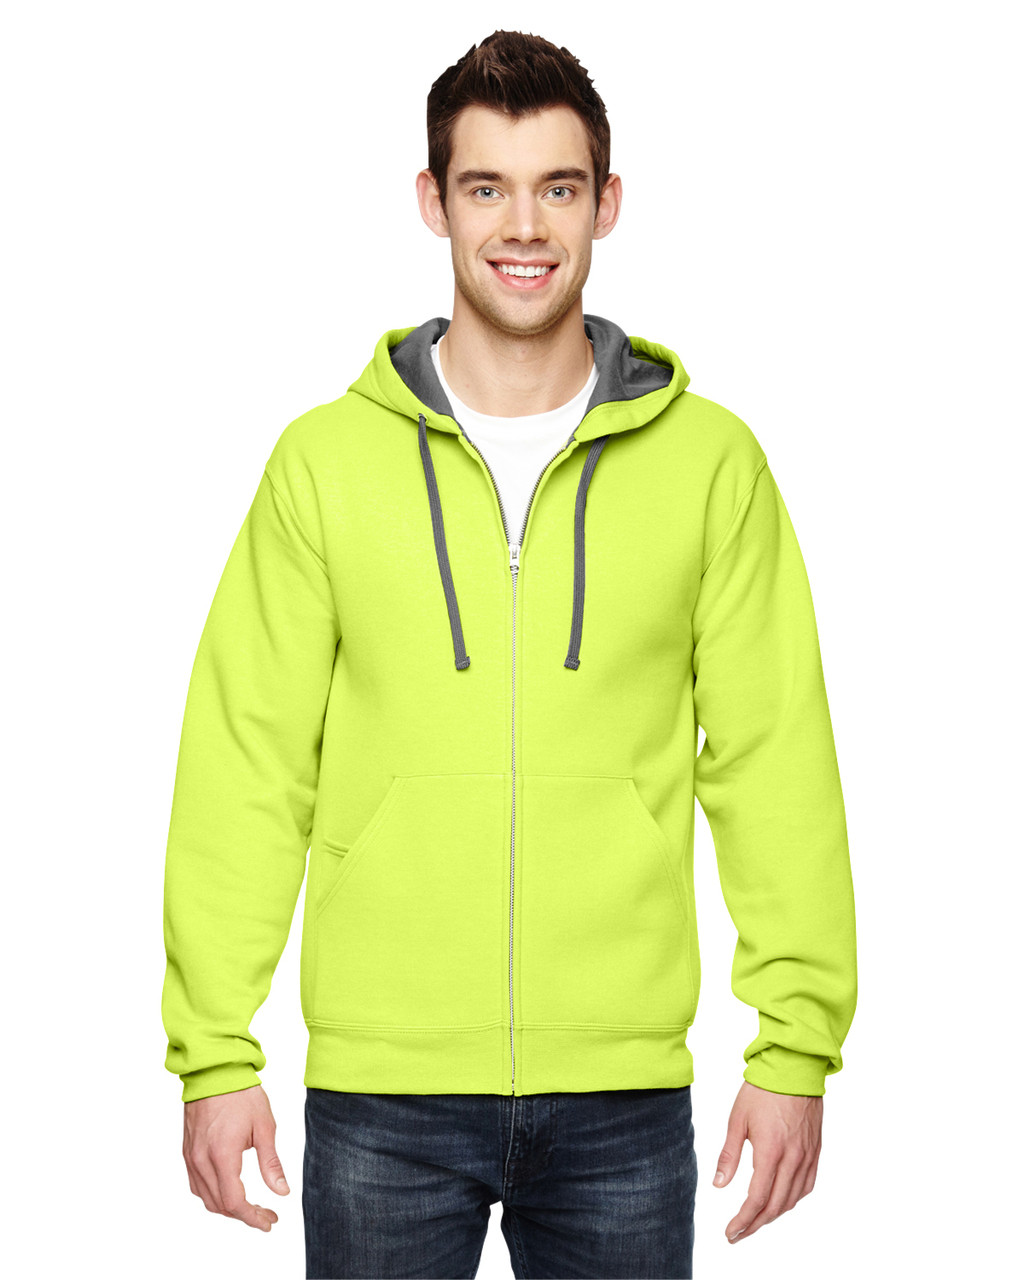 Citrus Green - SF73R Fruit Of The Loom Softspun Full-Zip Hooded Sweatshirt | Blankclothing.ca